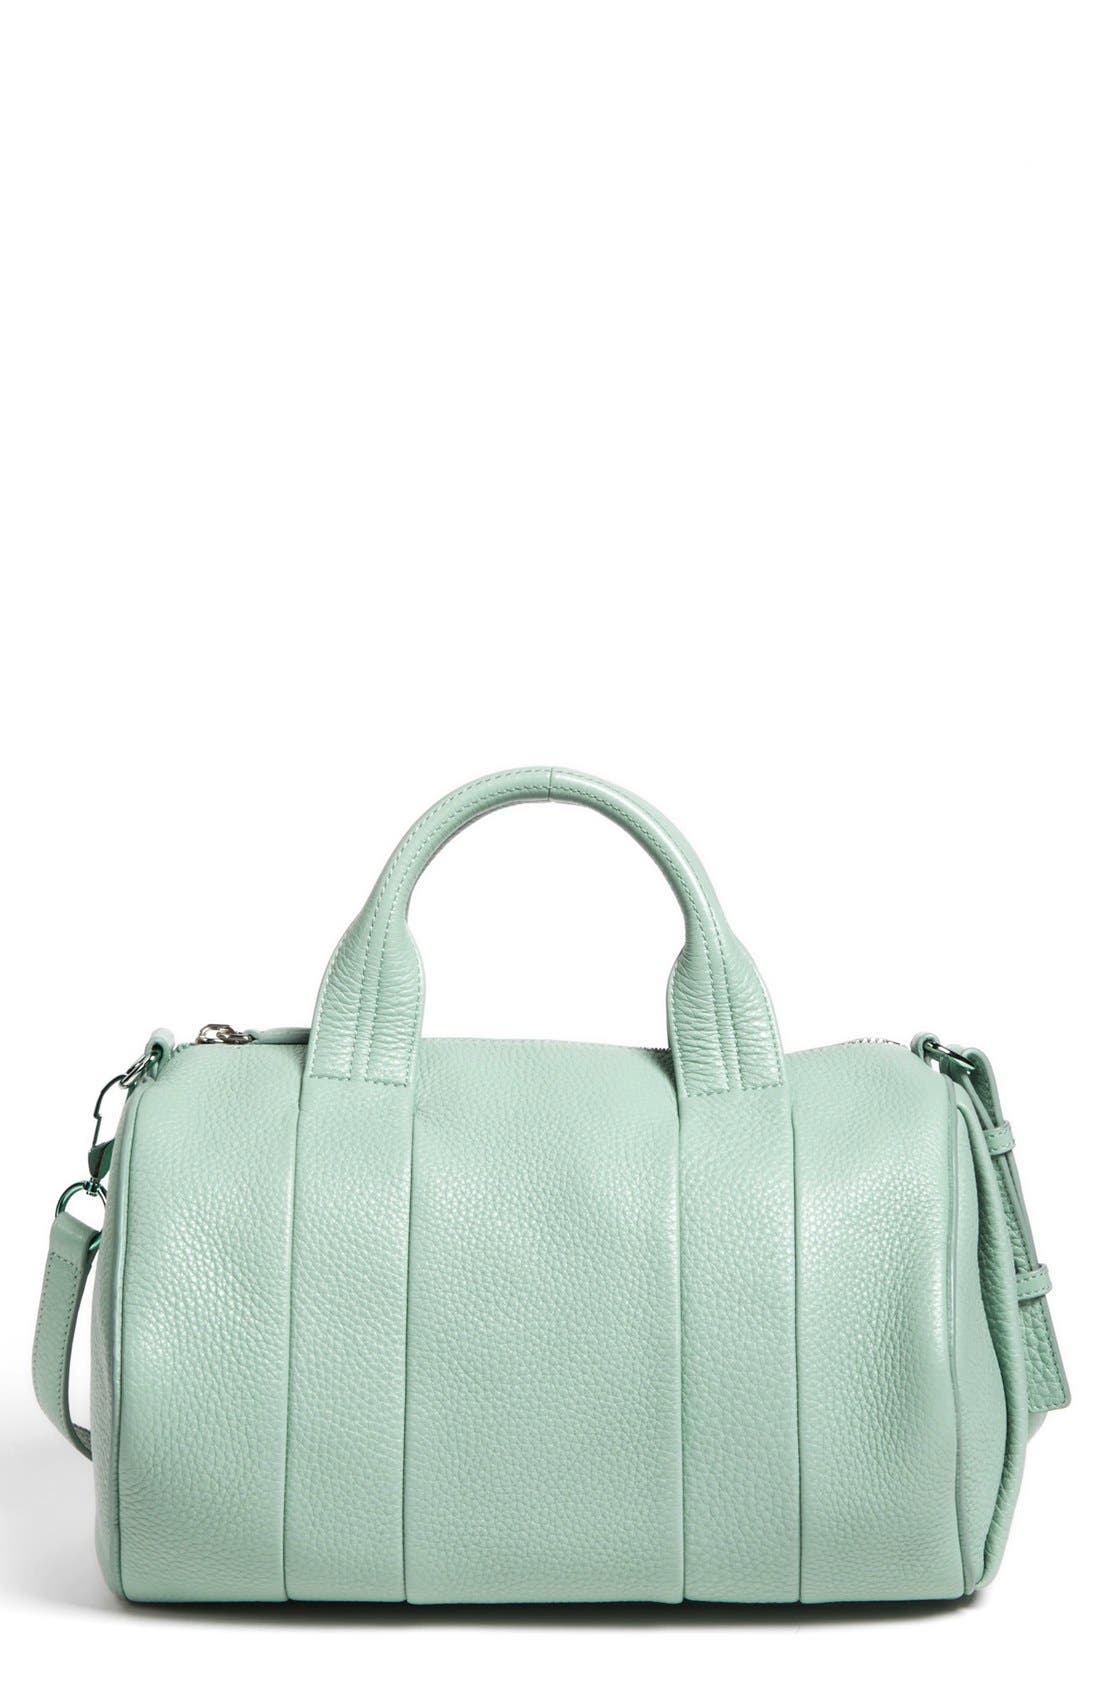 Alternate Image 1 Selected - Alexander Wang 'Rocco - Zinc' Leather Satchel